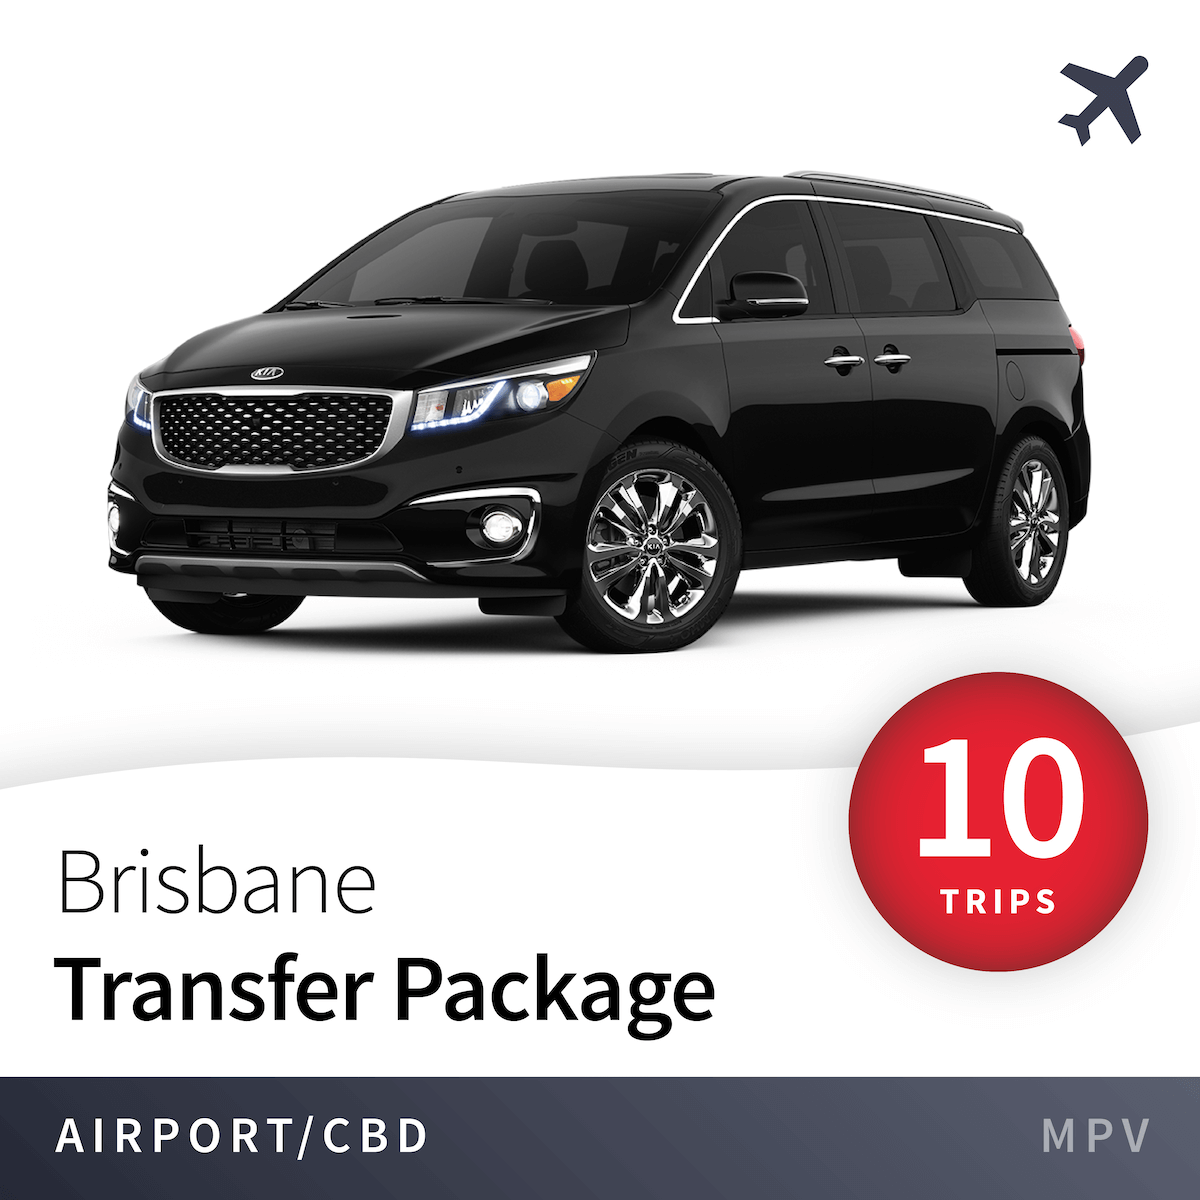 Brisbane Airport Transfer Package - MPV (10 Trips) 11